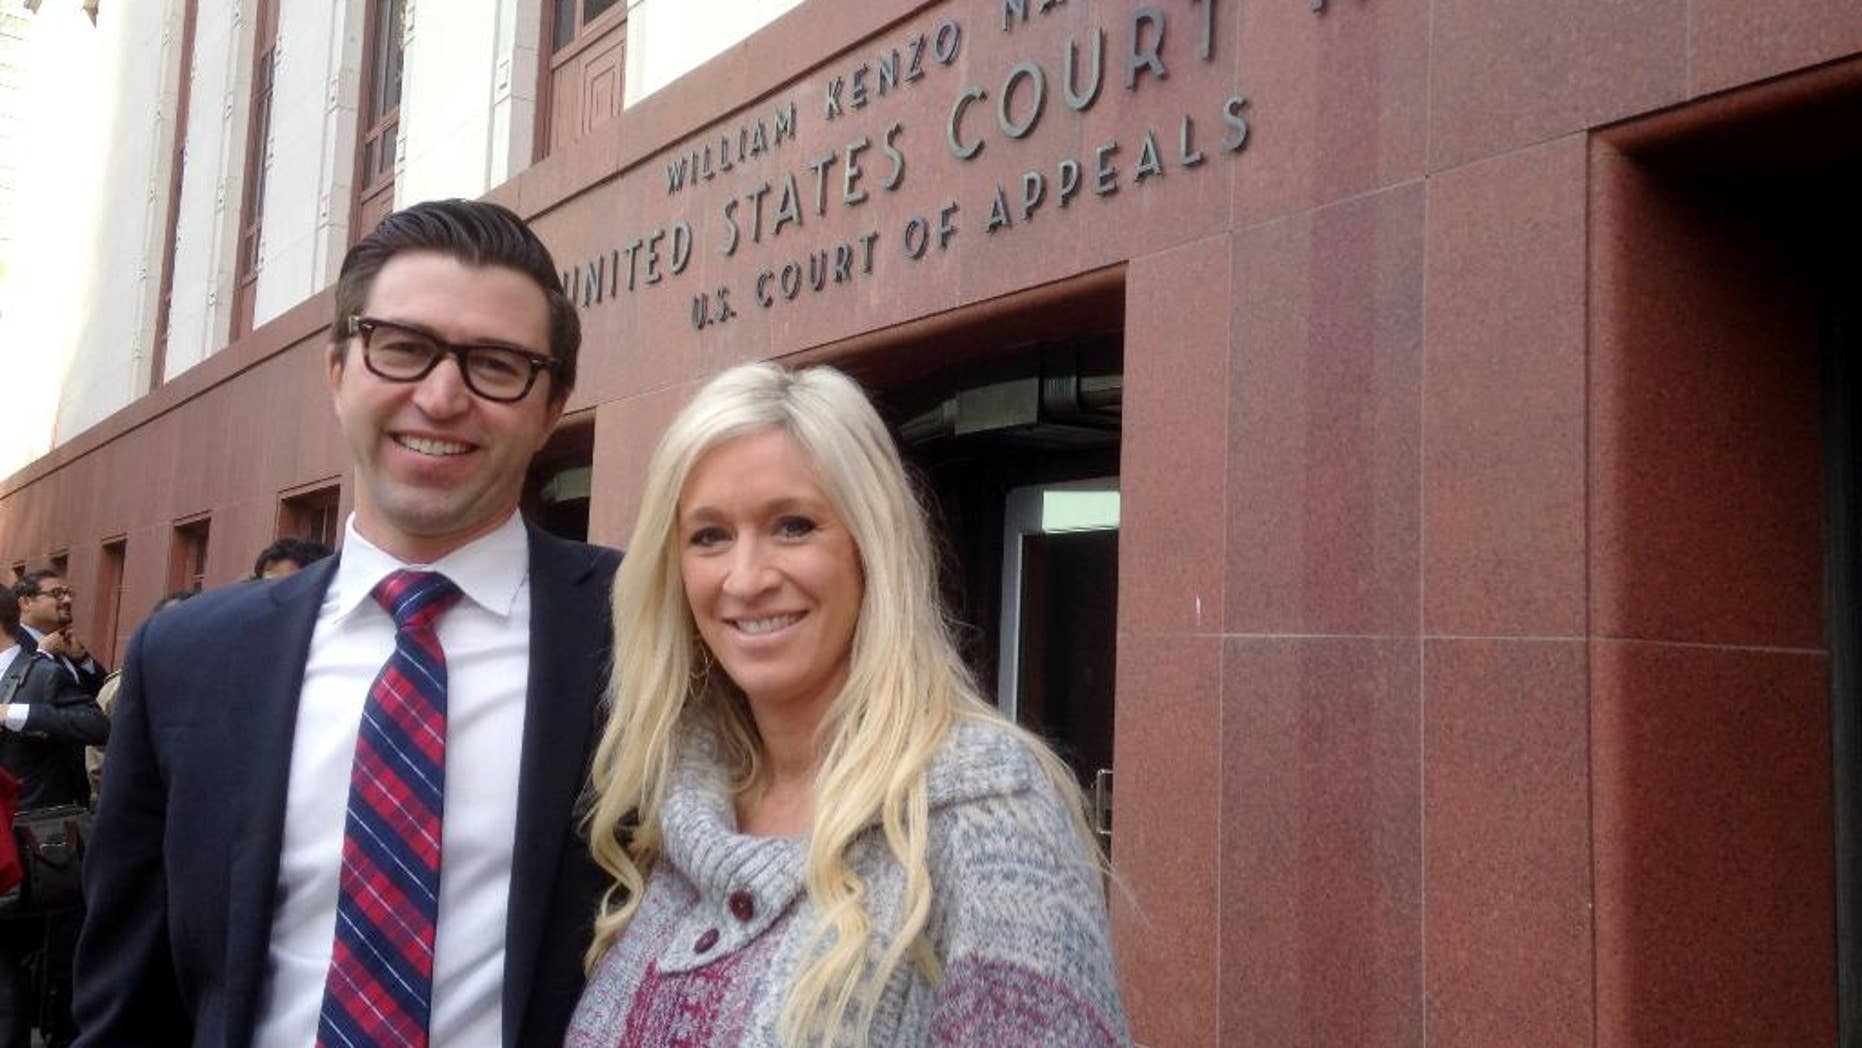 Idaho real estate attorney Peter Smith, left, and his wife, nurse Anna J. Smith, pose for a photo outside the federal appeals court building Monday, Dec. 8, 2014, in downtown Seattle. A three-judge panel of the 9th U.S. Circuit Court of Appeals heard arguments Monday in Anna Smith's case challenging the National Security Agency's bulk collection of Americans' phone records; Peter Smith argued the case on her behalf. (AP Photo/Gene Johnson)